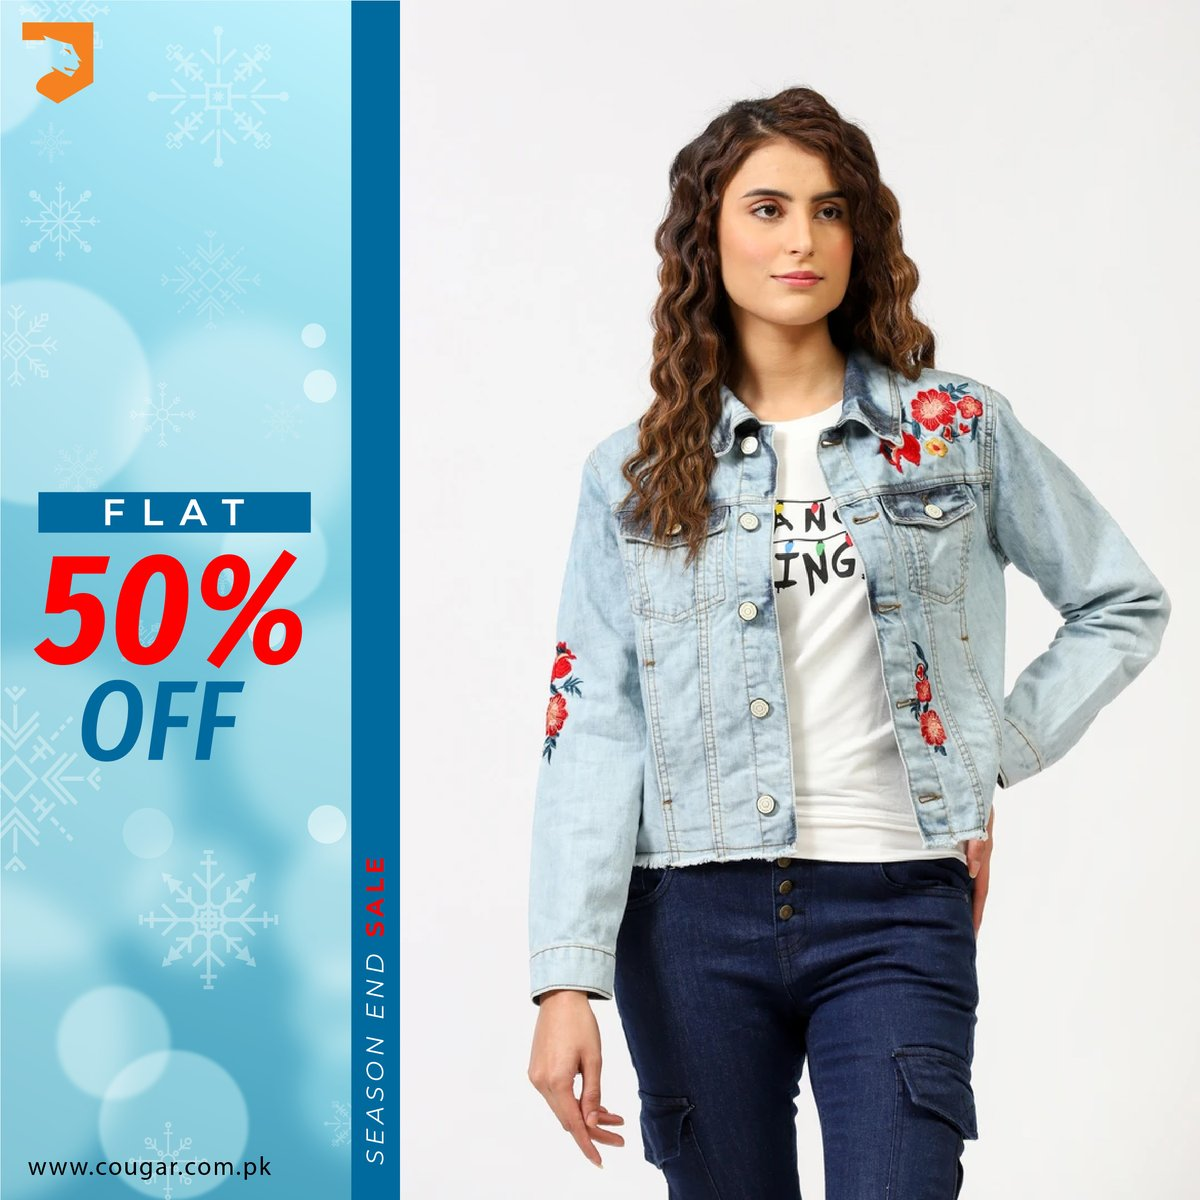 Season End Sale! FLAT 50% OFF on entire stock. For more details:    #cougarclothing #cougarcrew #jointhecrew #eoss #sale #denim #onlineshopping